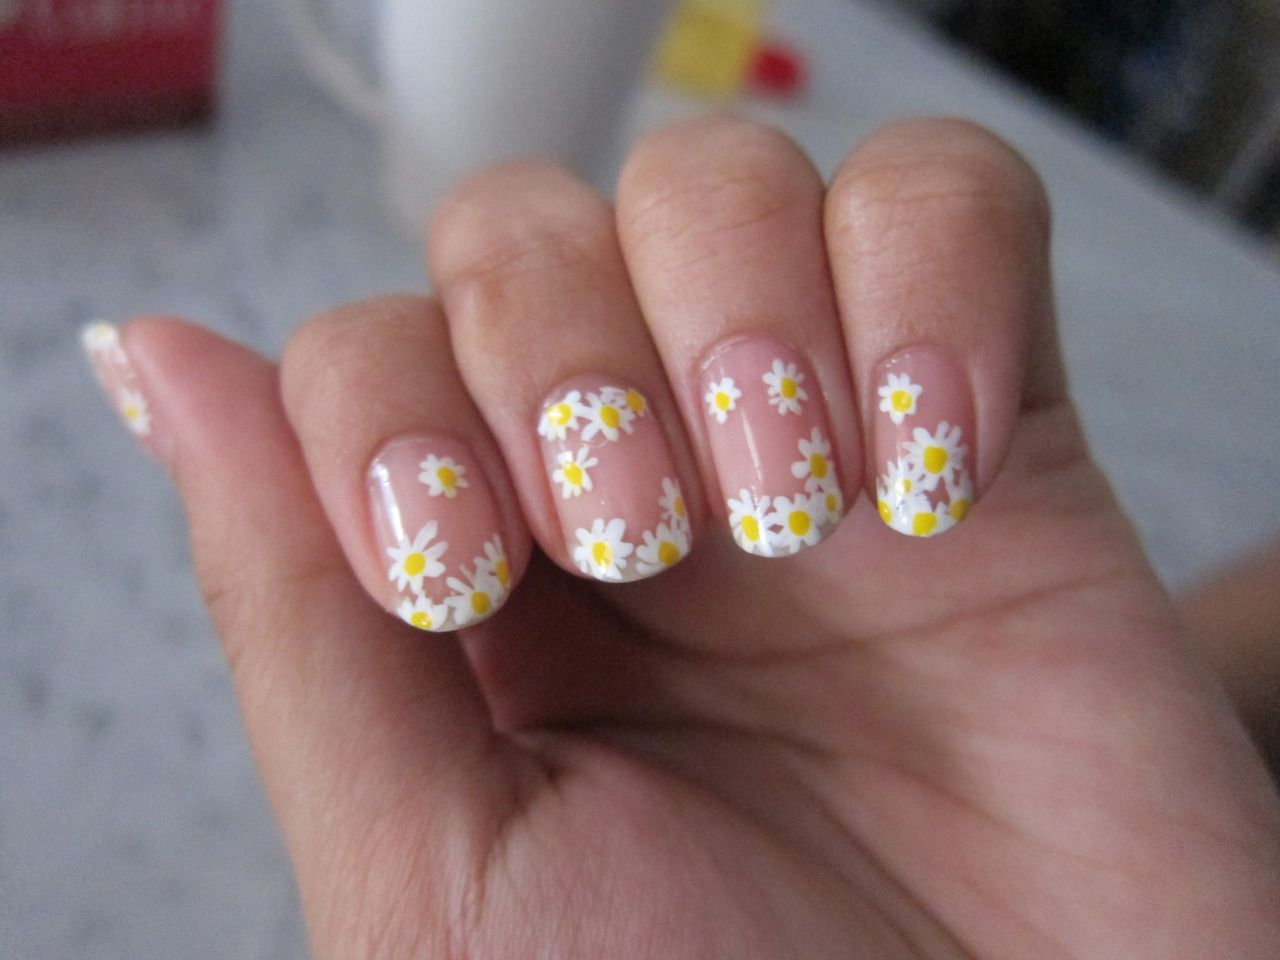 Daisy Nails! | Nails | Pinterest | Daisy nails, Flower nails and ...